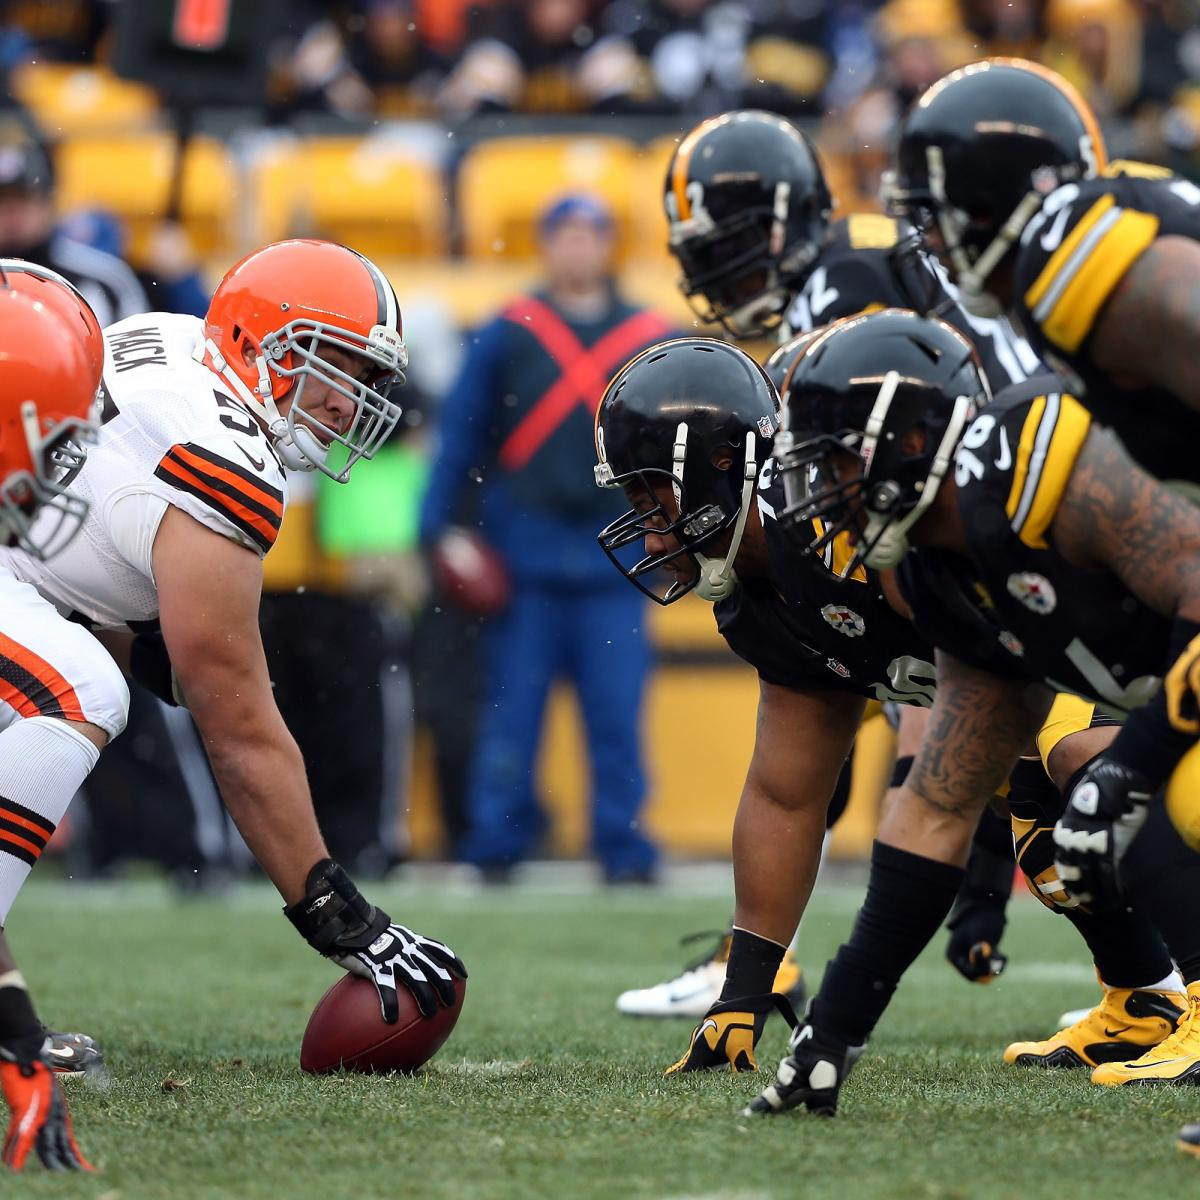 Cleveland Browns vs Pittsburgh Steelers on Dec 31 2017 Watch video of the game buy tickets get stats amp depth charts game highlights analysis recap and